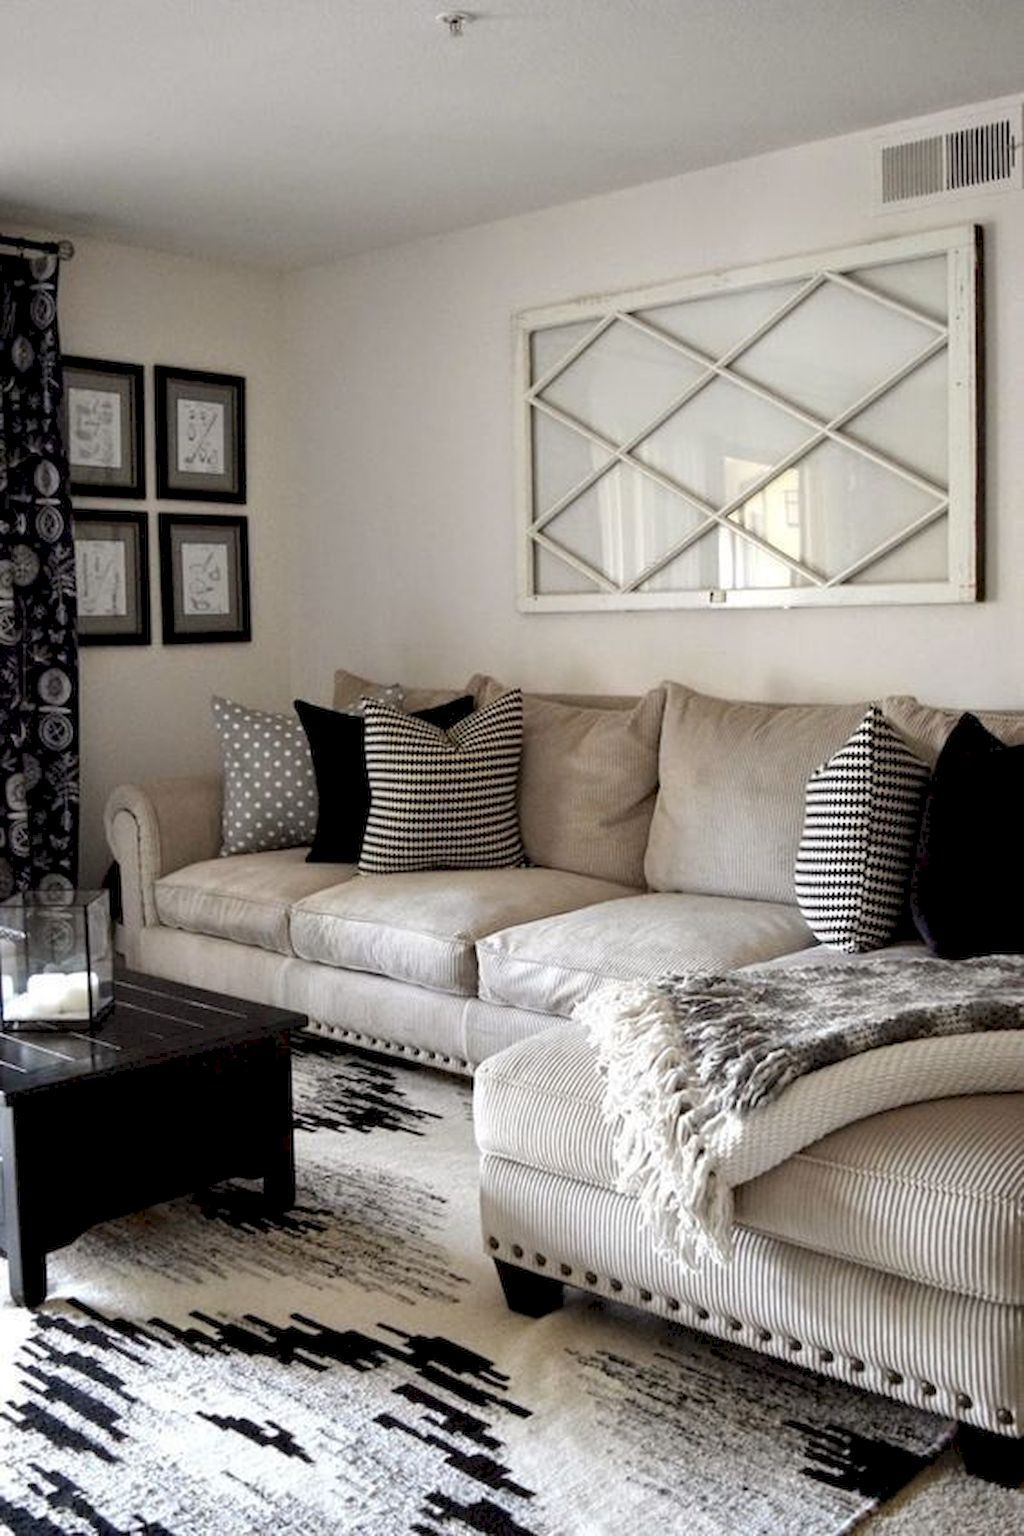 Designs For Sofas For The Living Room: Adorable 36 Small Living Room Ideas On A Budget Https